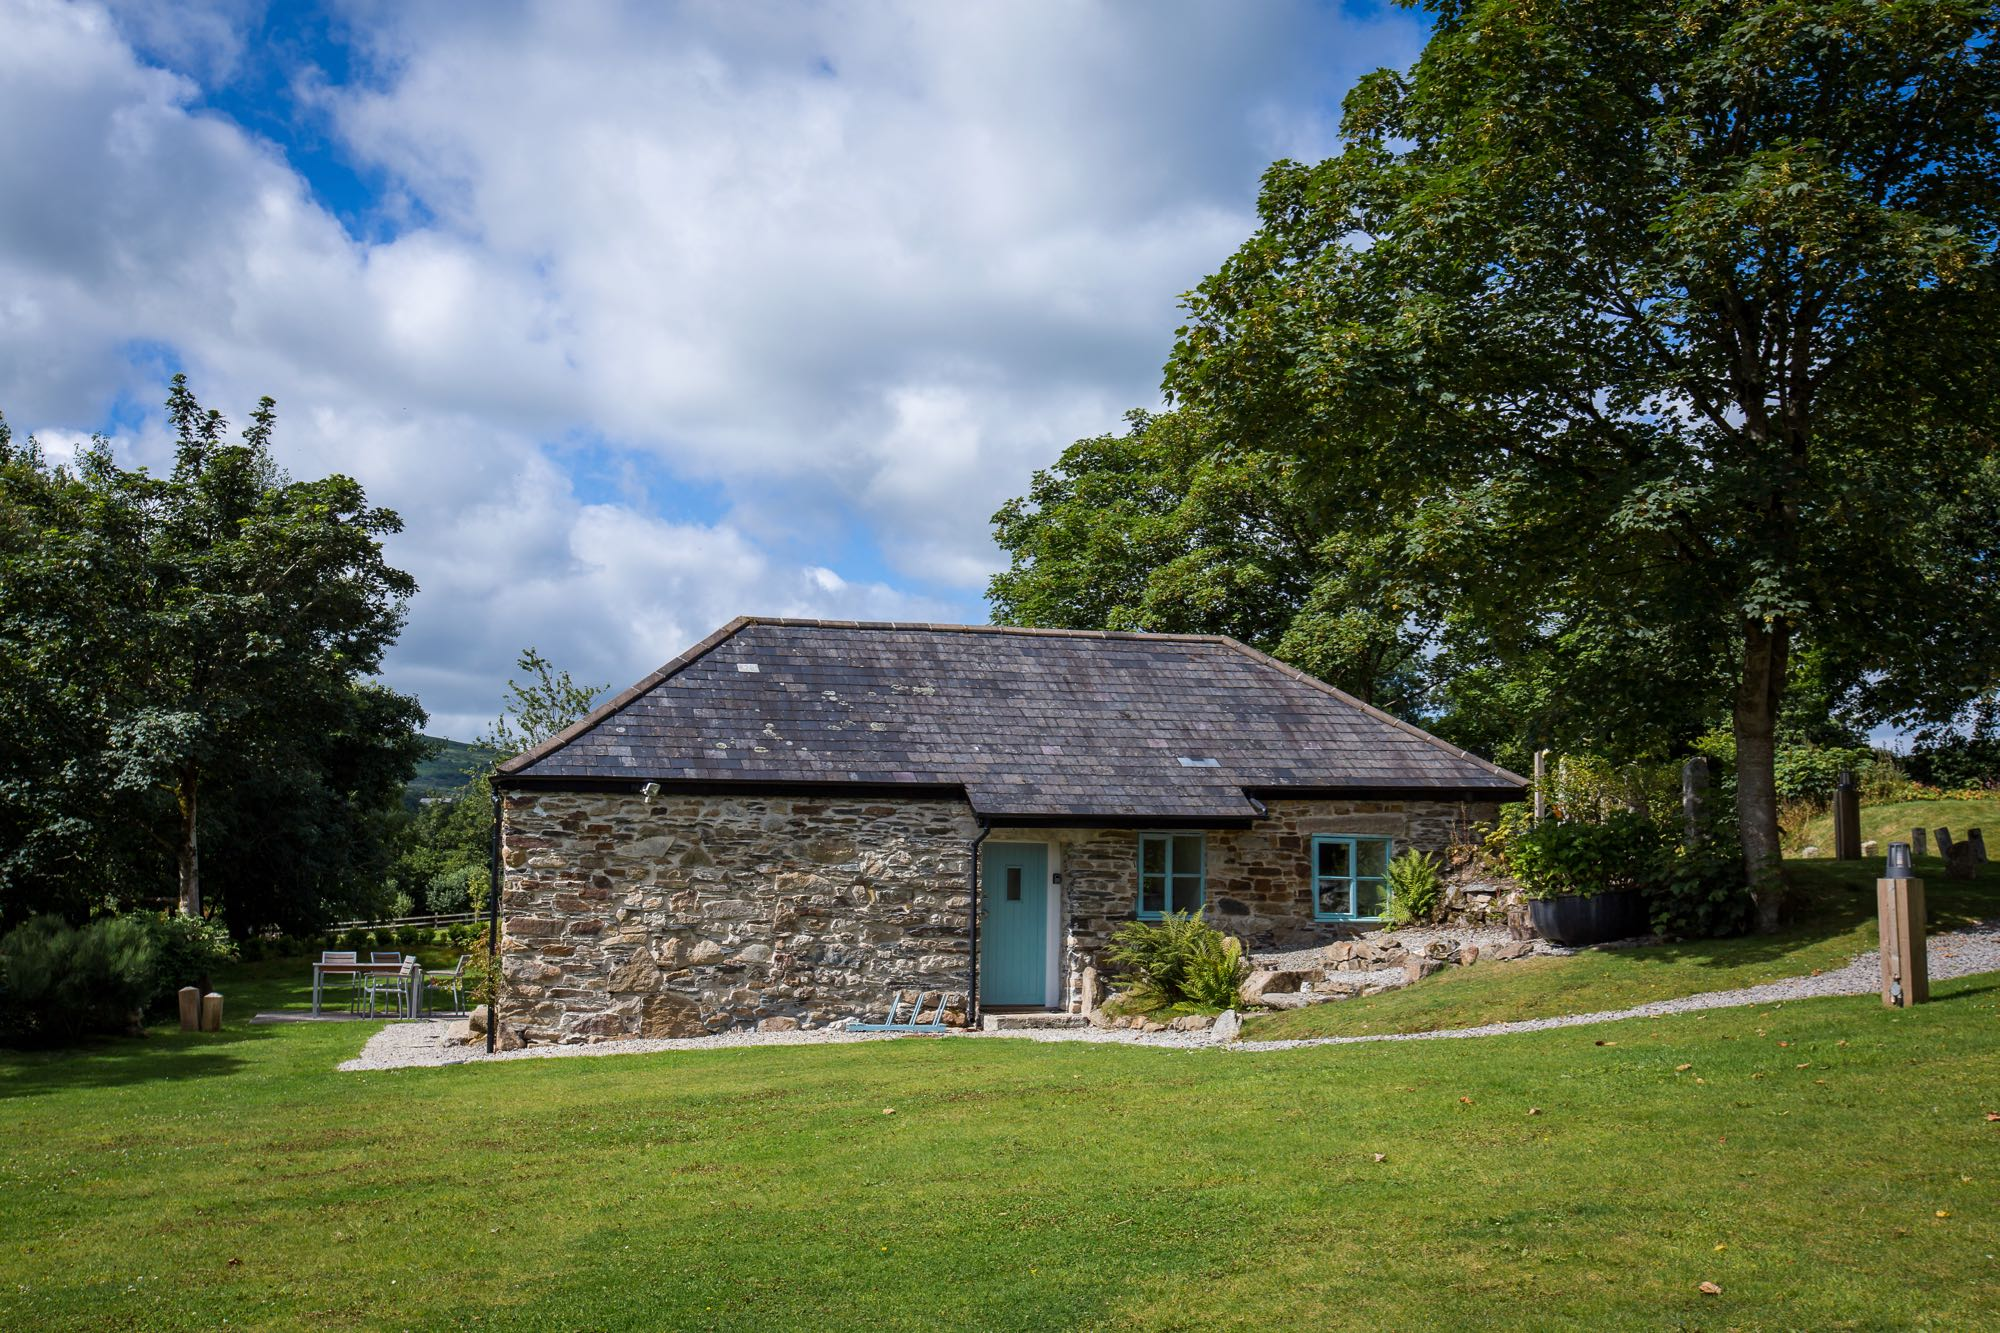 This picture shows cottage number two which is a detached cottage that sleeps 4 people. The cottage is in the middle of the image and there are lawns in front and a blue cloudy sky above. There are trees in leaf to the left and to the right. The cottage is built of local granite stone which is brown and grey in colour. It has a grey slate roof the main roof line runs from left to right along the length of the photograph. In the middle of the building there is the front doorthat is painted pale blue. On the right of the door there are 2 georgian style sash window also painted blue.